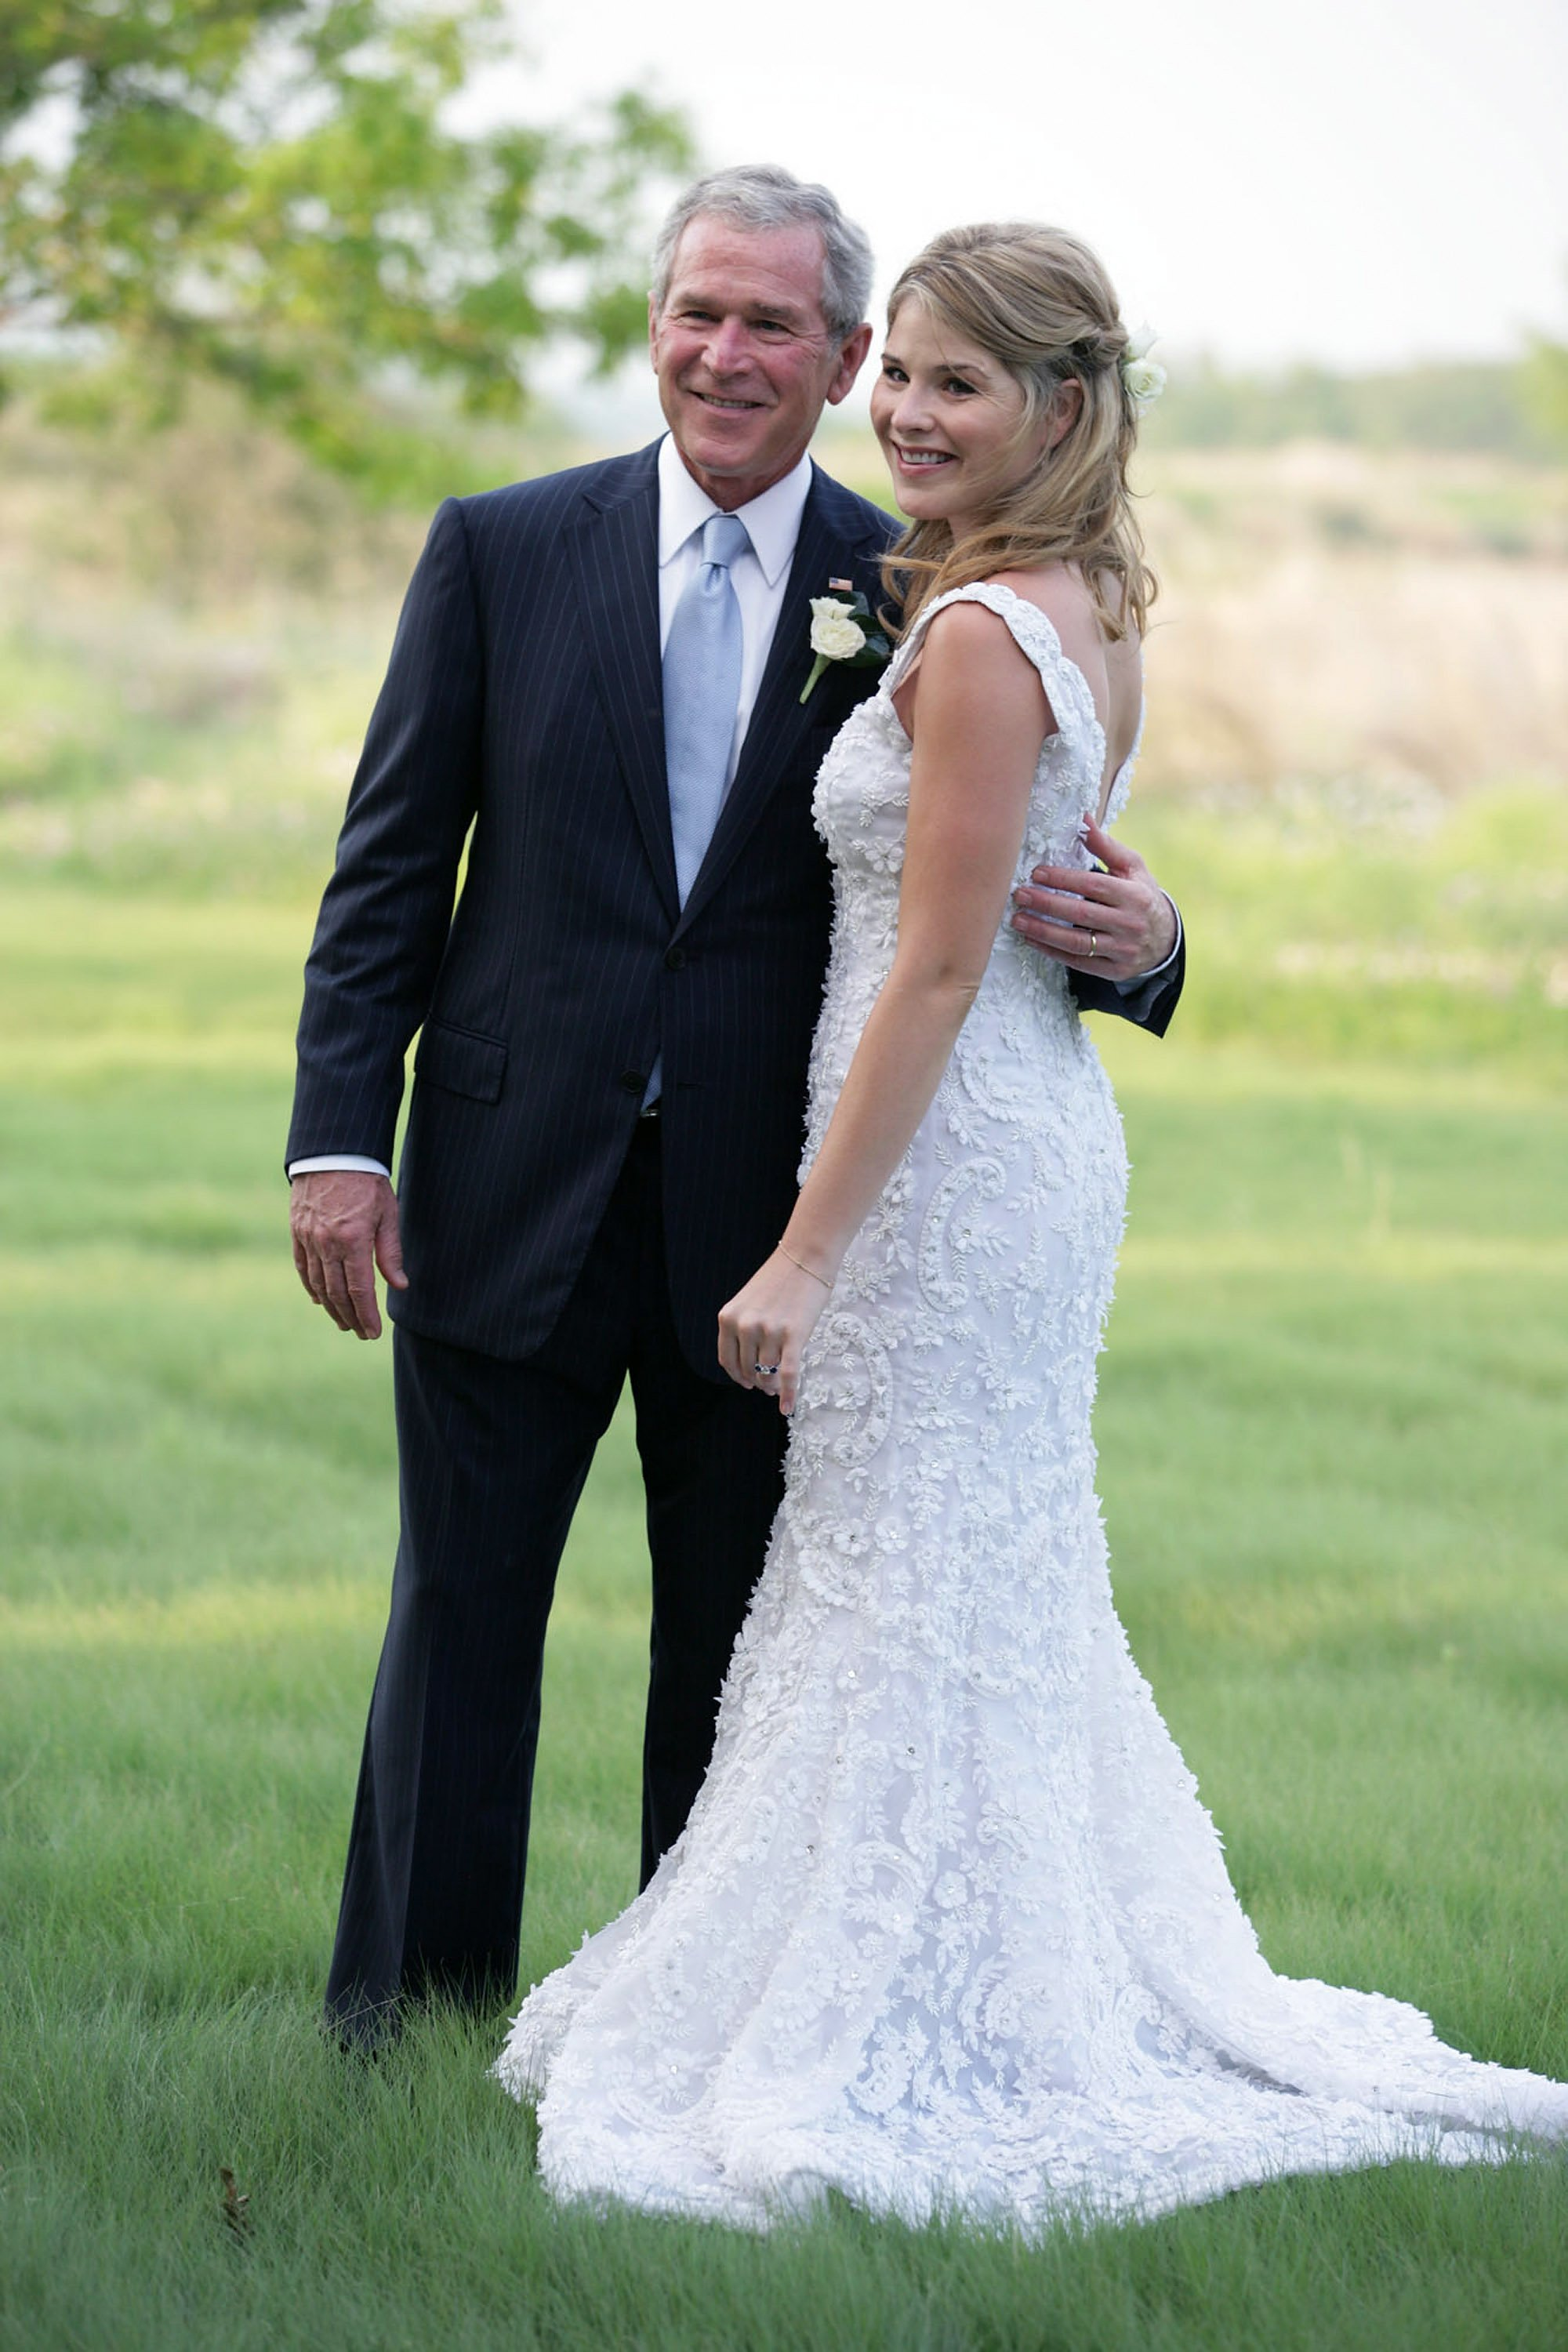 Jenna Bush Hager and her father George W. Bush pictured at her wedding at Prairie Chapel Ranch May 10, 2008.   Photo: Getty Images